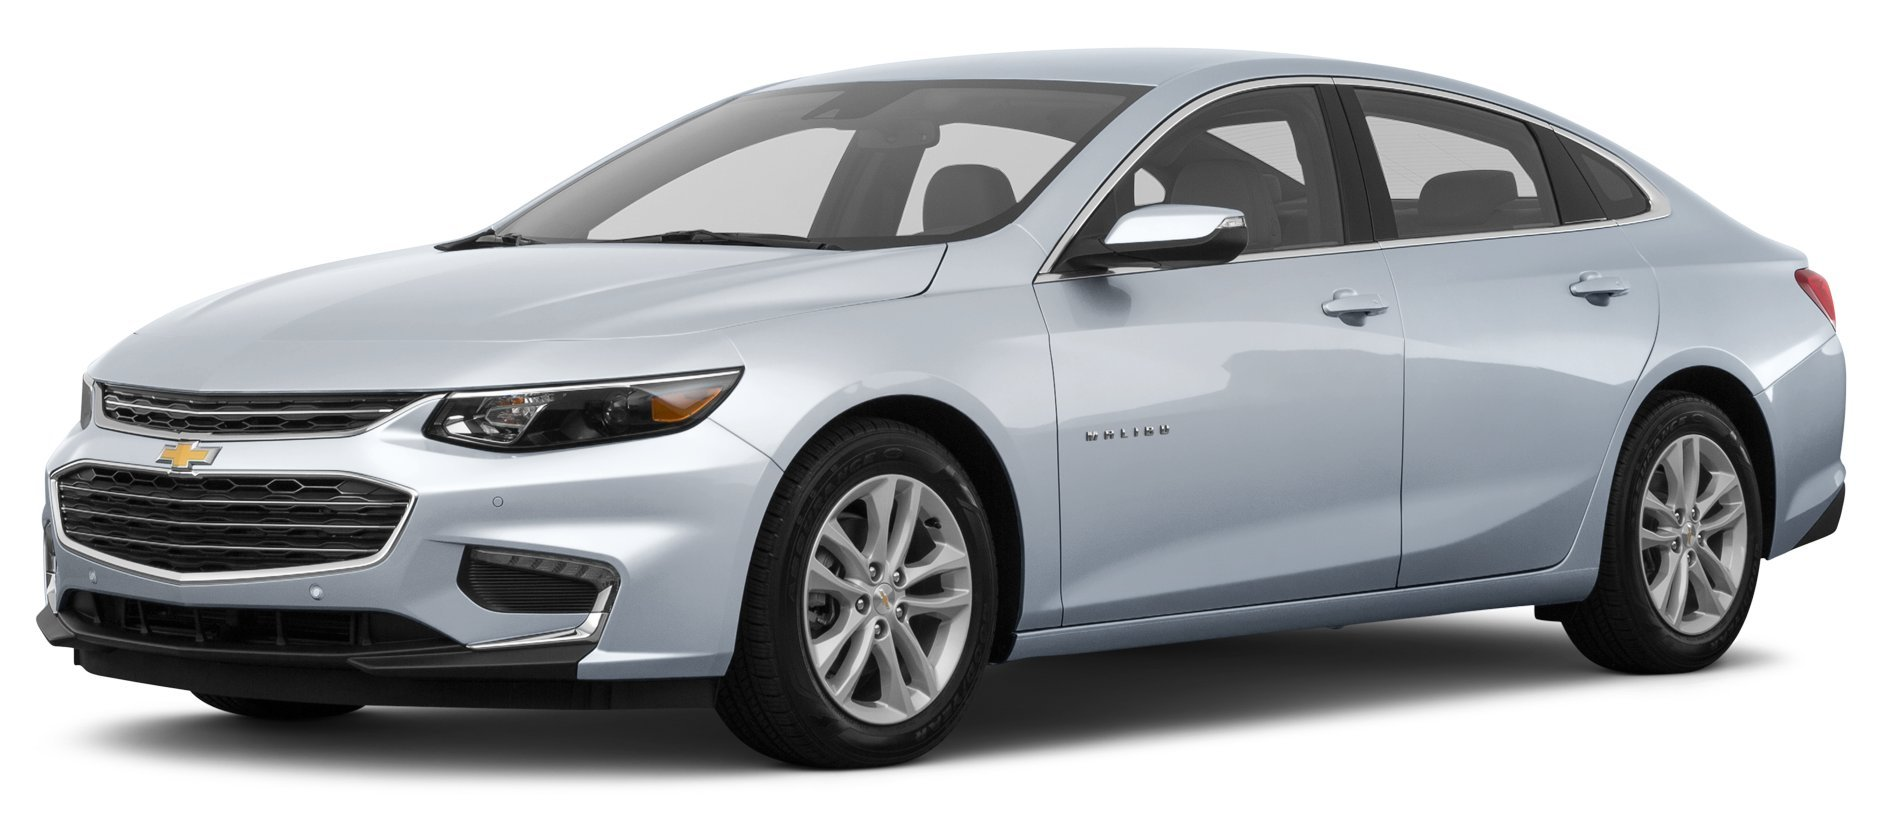 2017 chevrolet malibu reviews images and specs vehicles. Black Bedroom Furniture Sets. Home Design Ideas